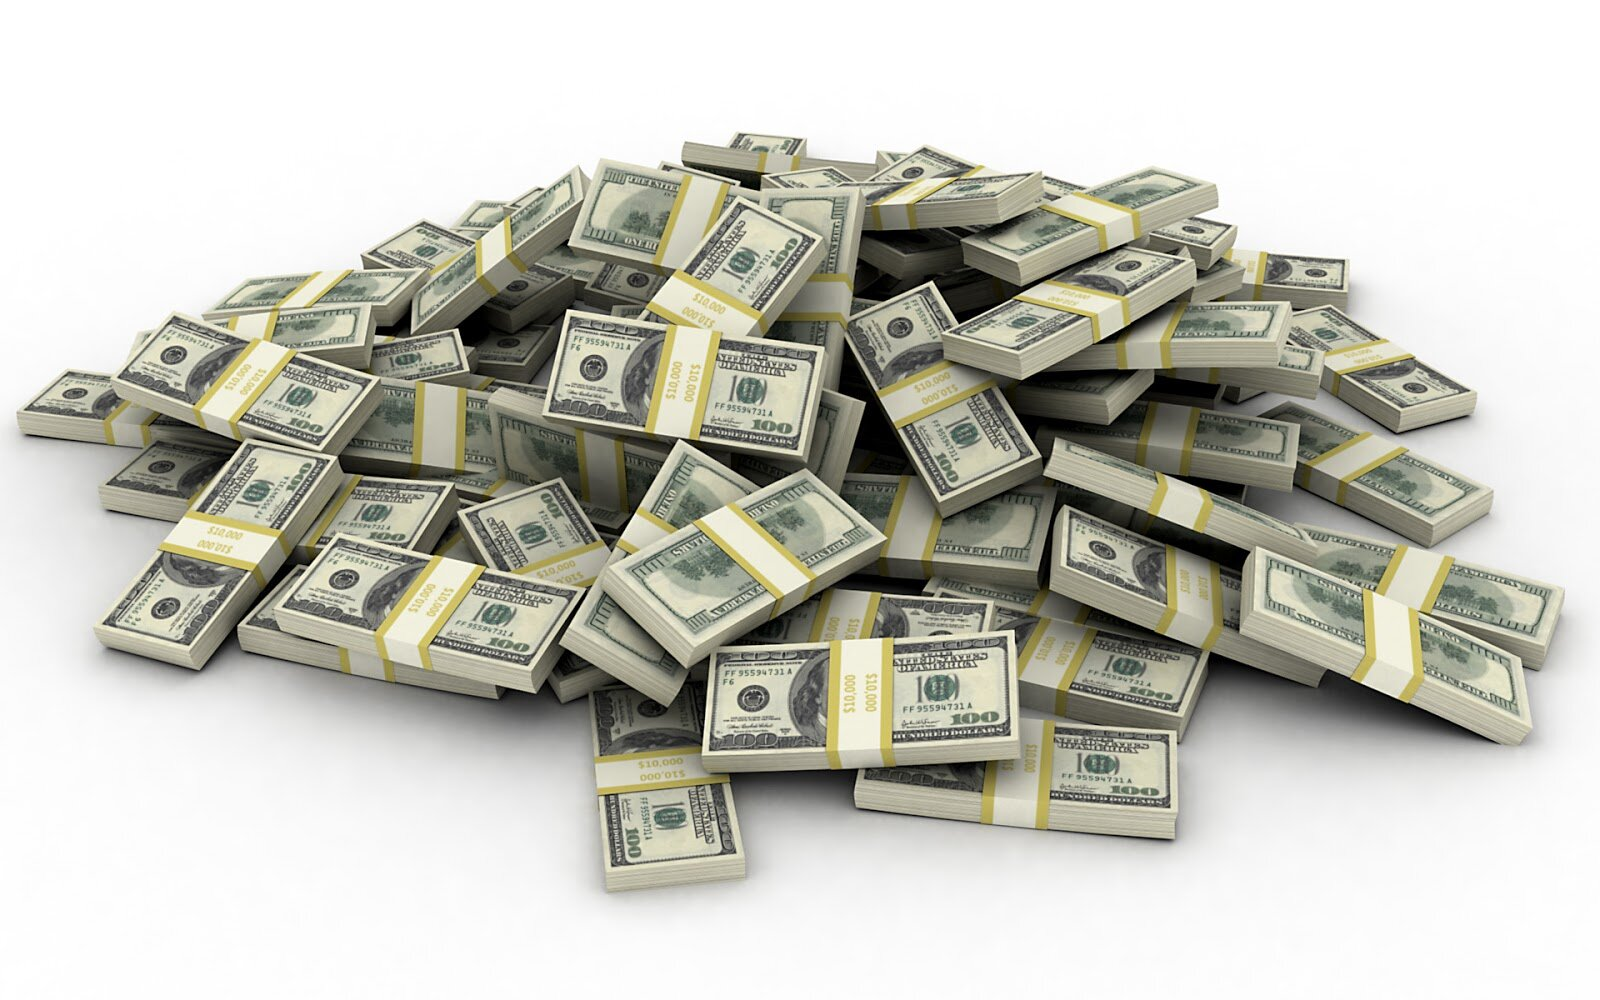 money is the most important factor motivating workers today Money plays an important role in motivation role of money in motivation and maintain good work force money is a real motivating factor when.